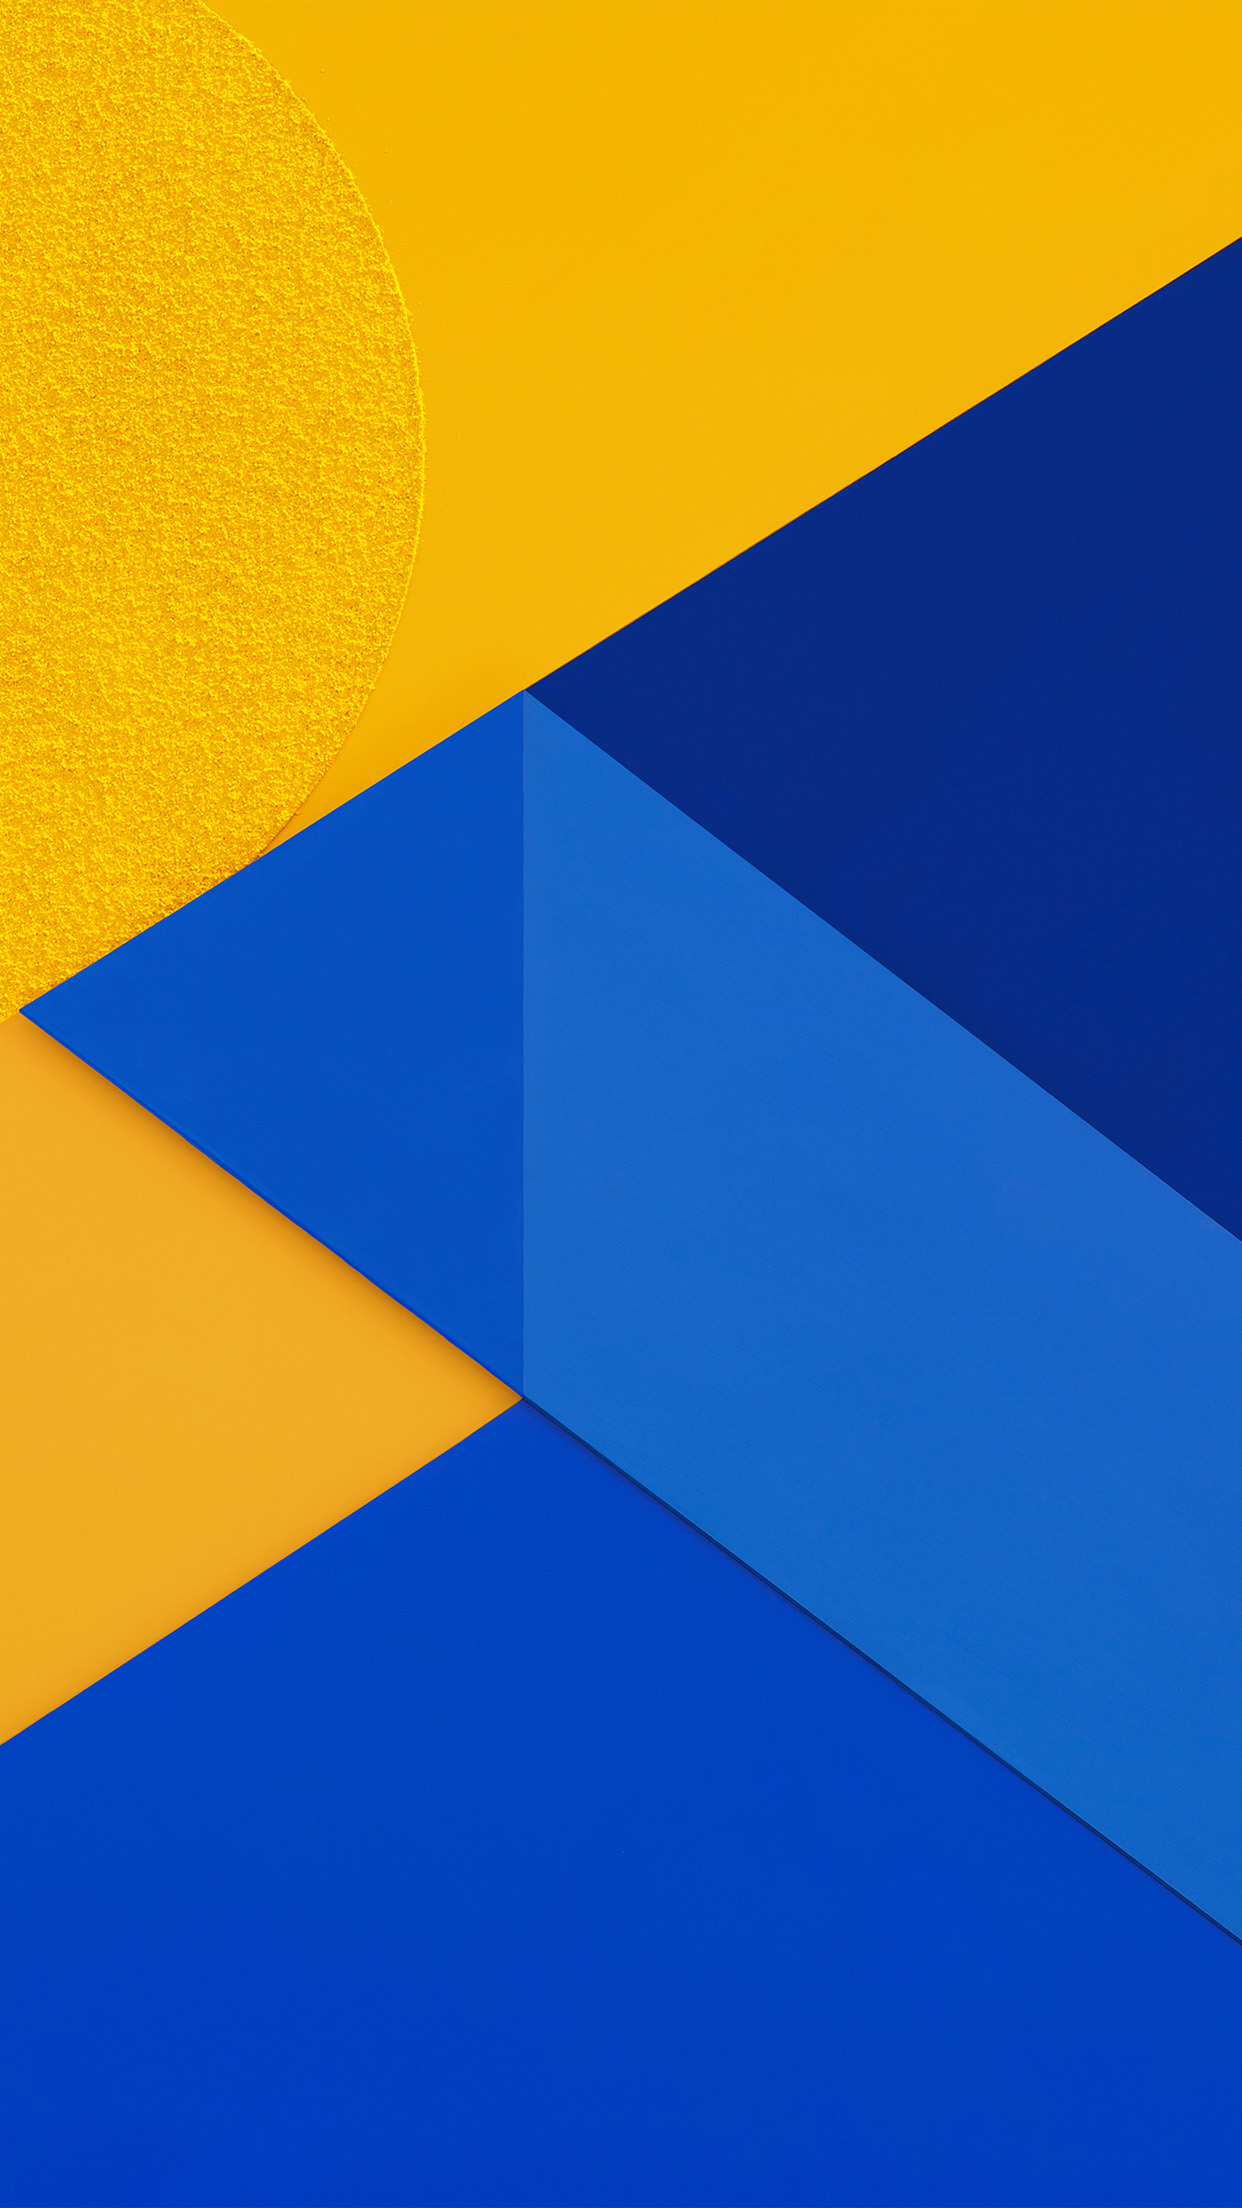 vl17-android-marshmallow-new-blue-yellow-pattern - Papers.co